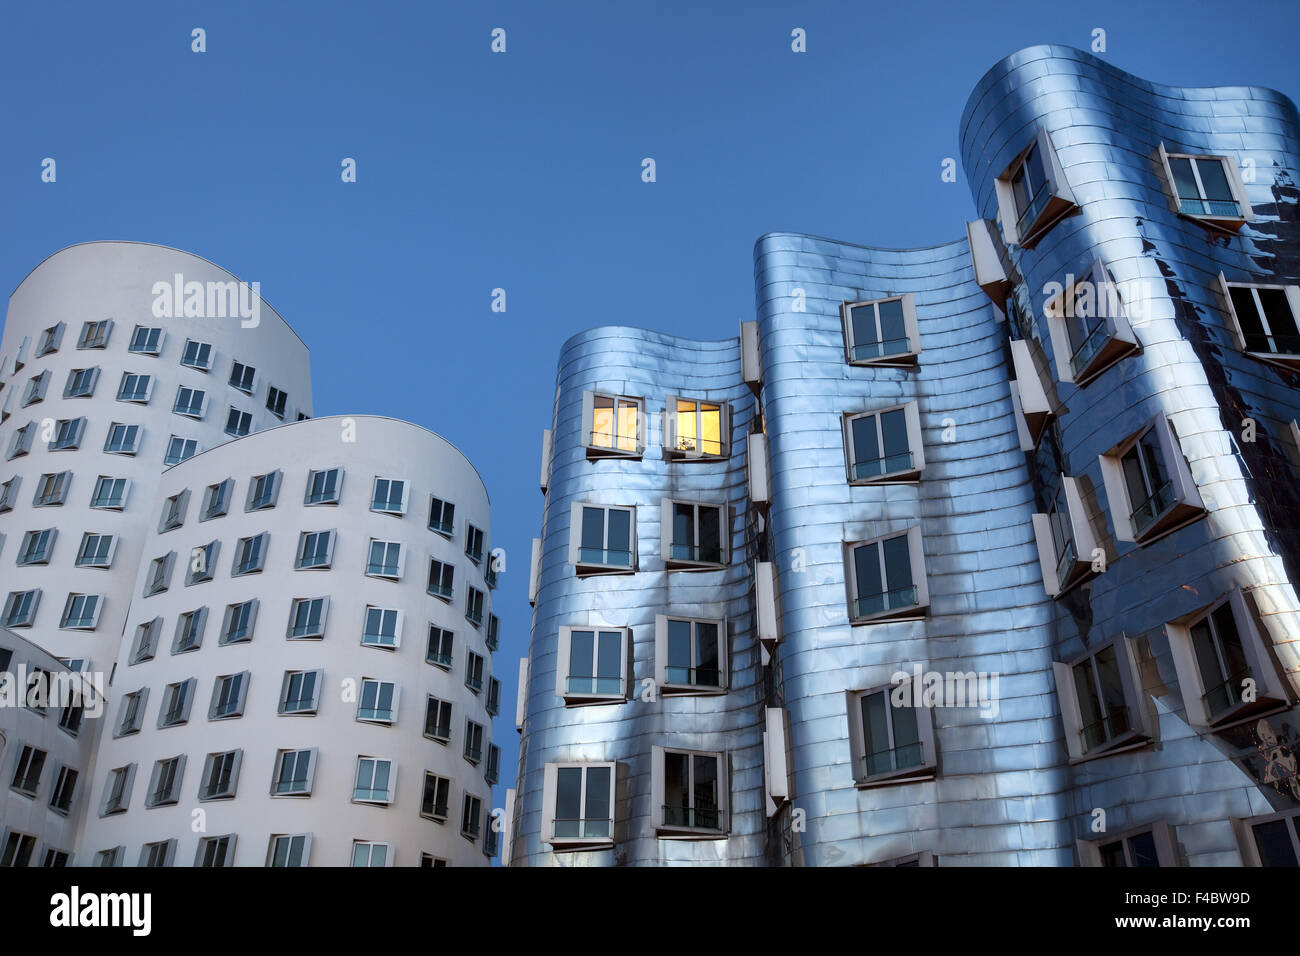 Bâtiments Gehry, nouveau Zollhof, Duesseldorf Photo Stock